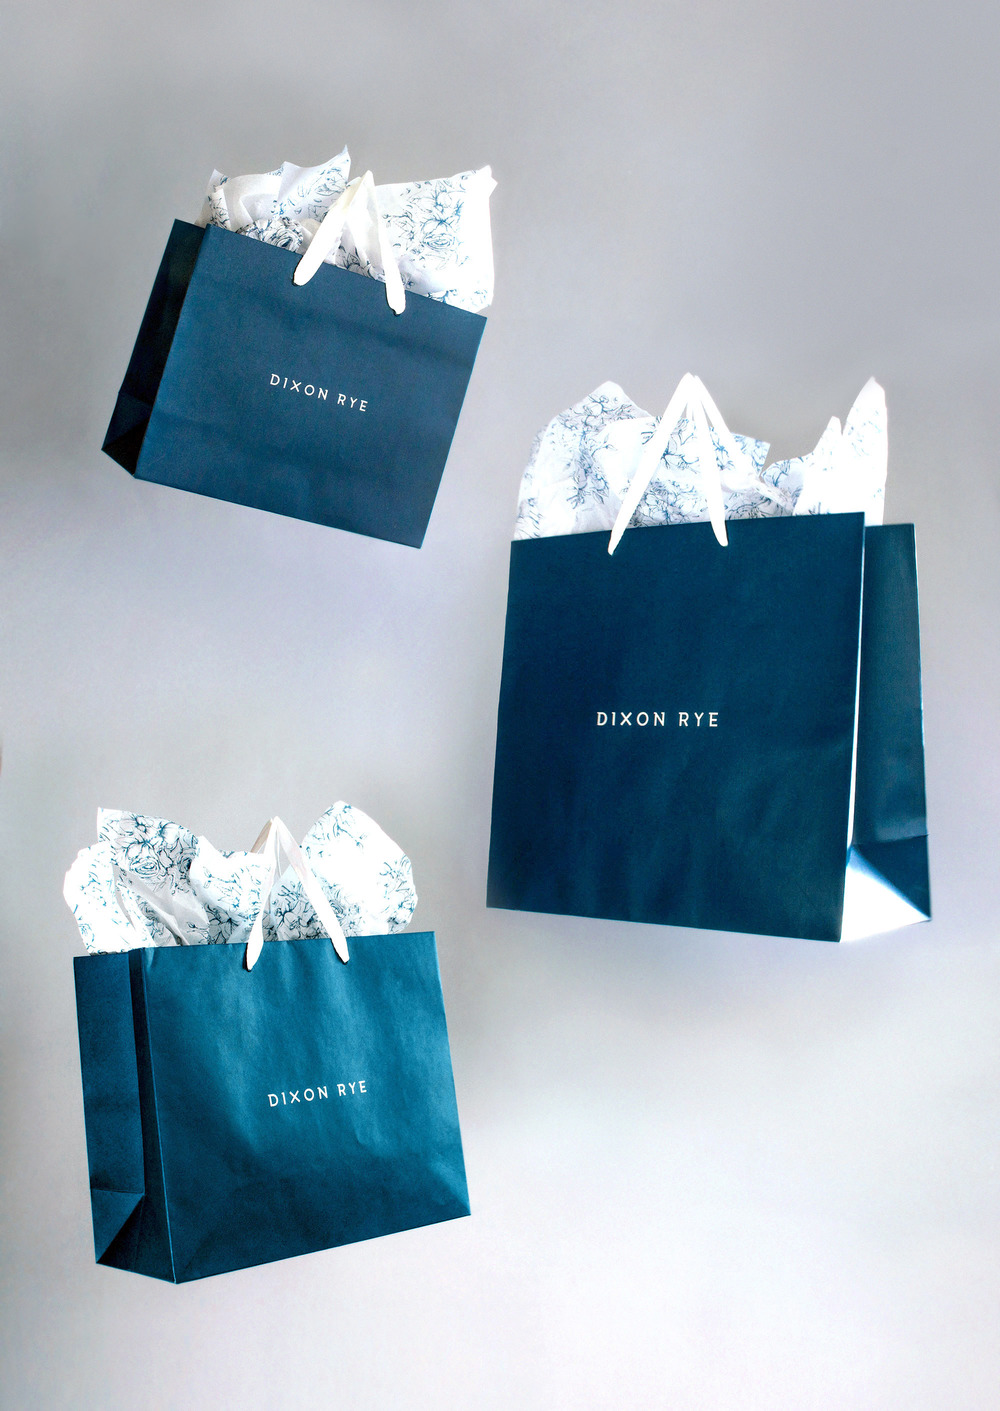 Dixon Rye's branded navy retail bags in three sizes, suspended in air.